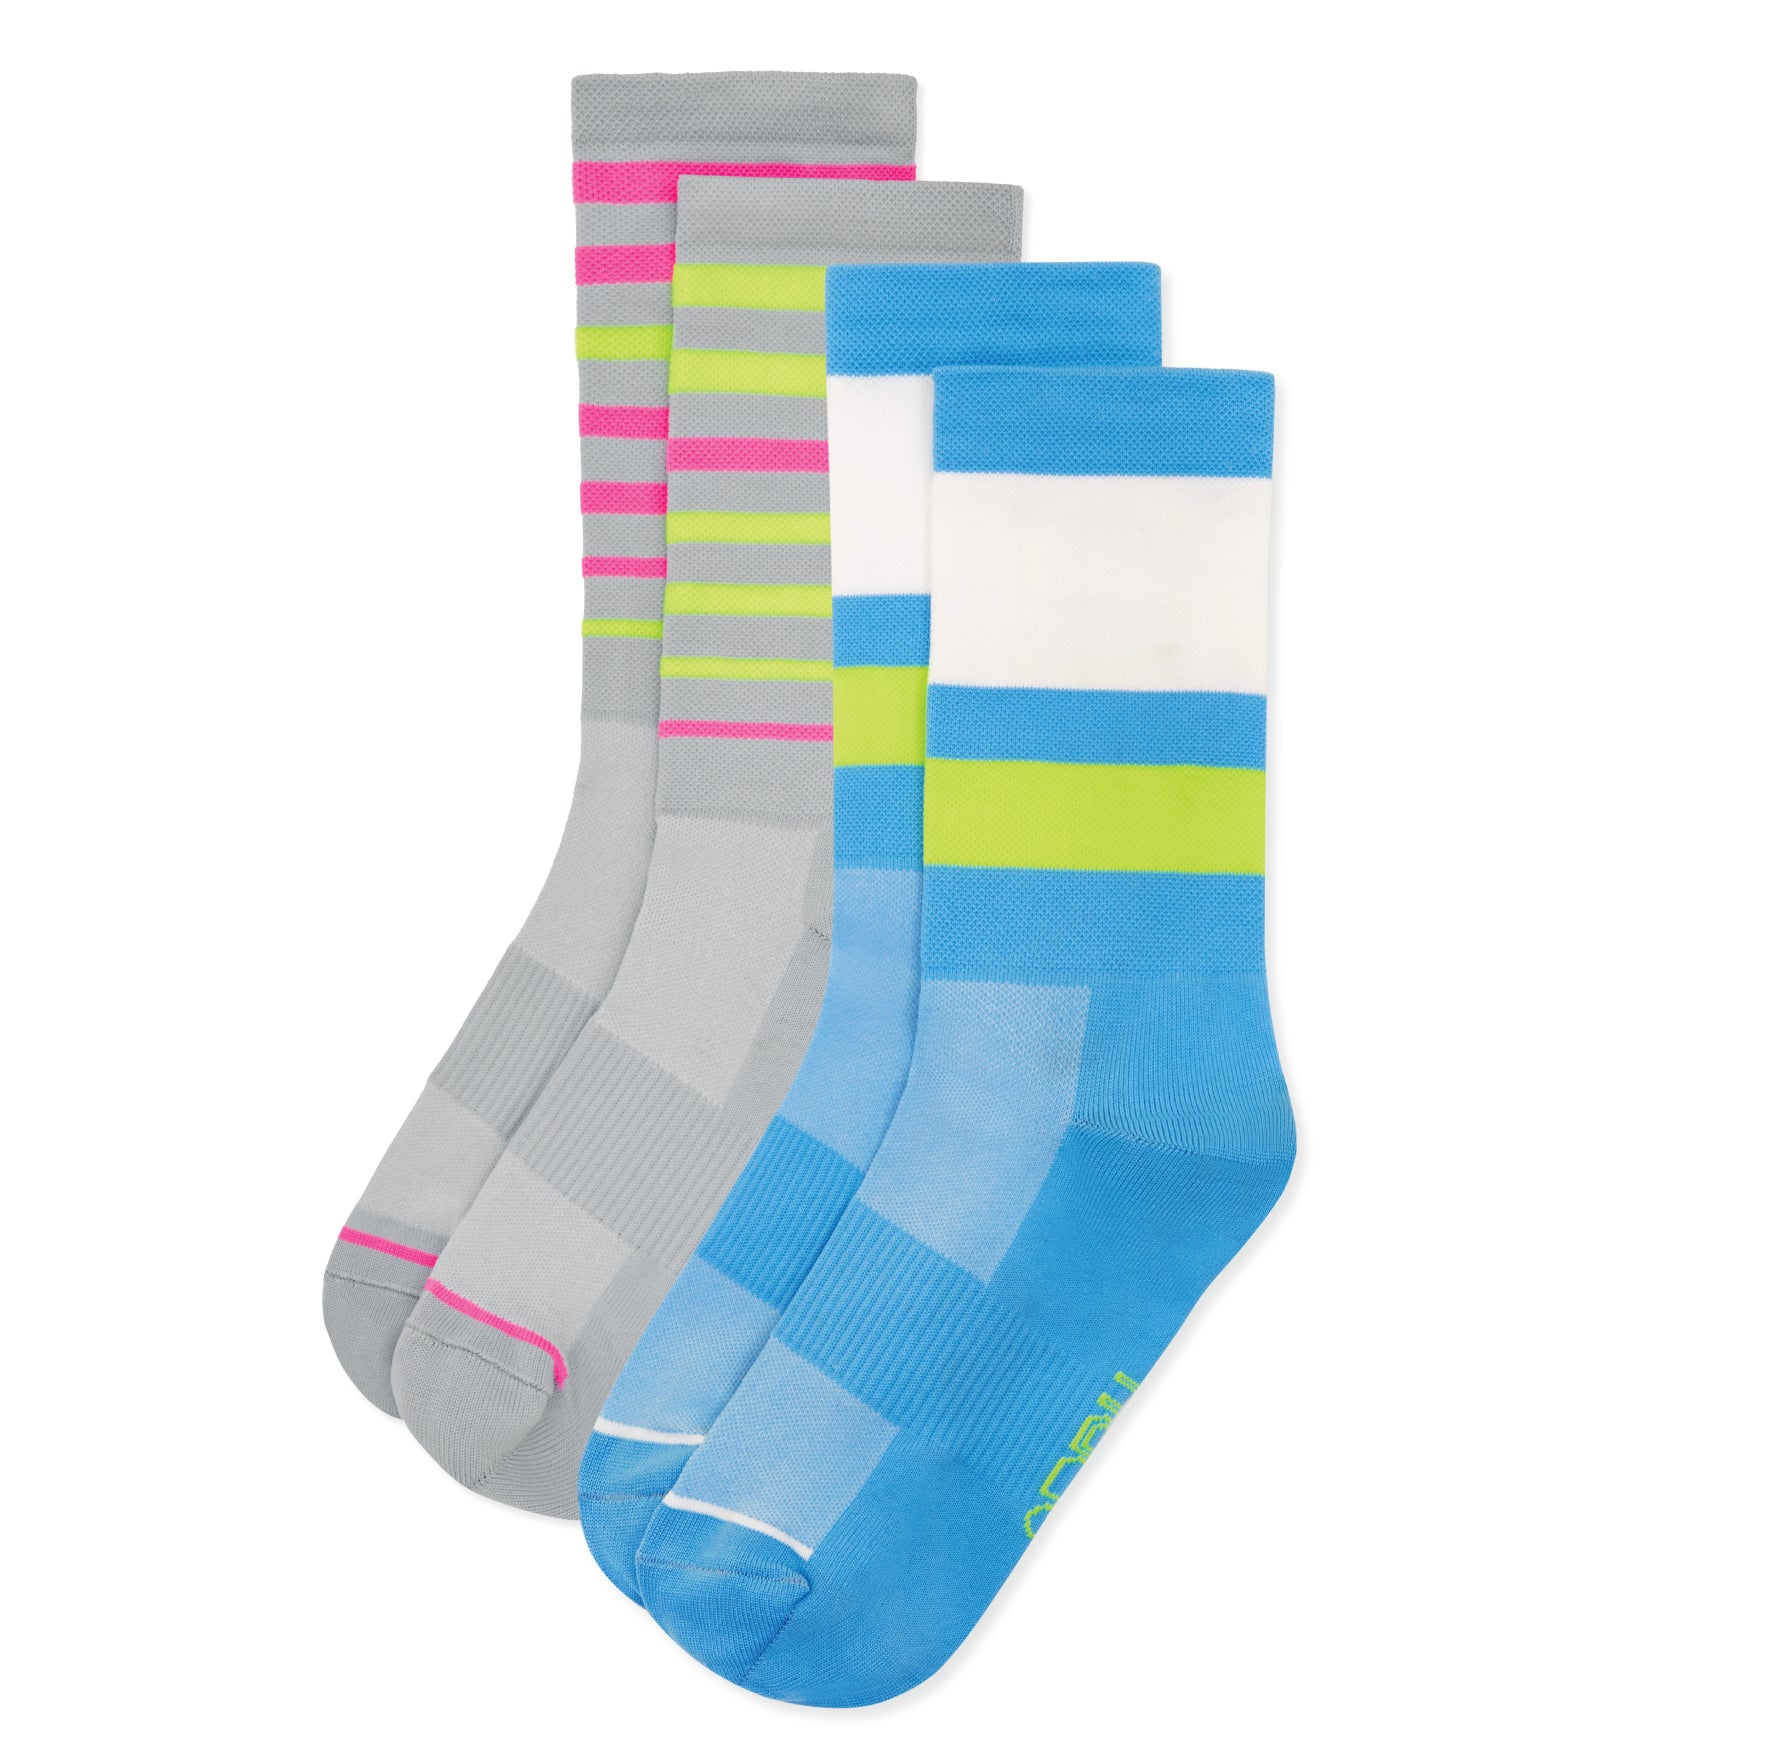 Cycling Sock Bundle Deal